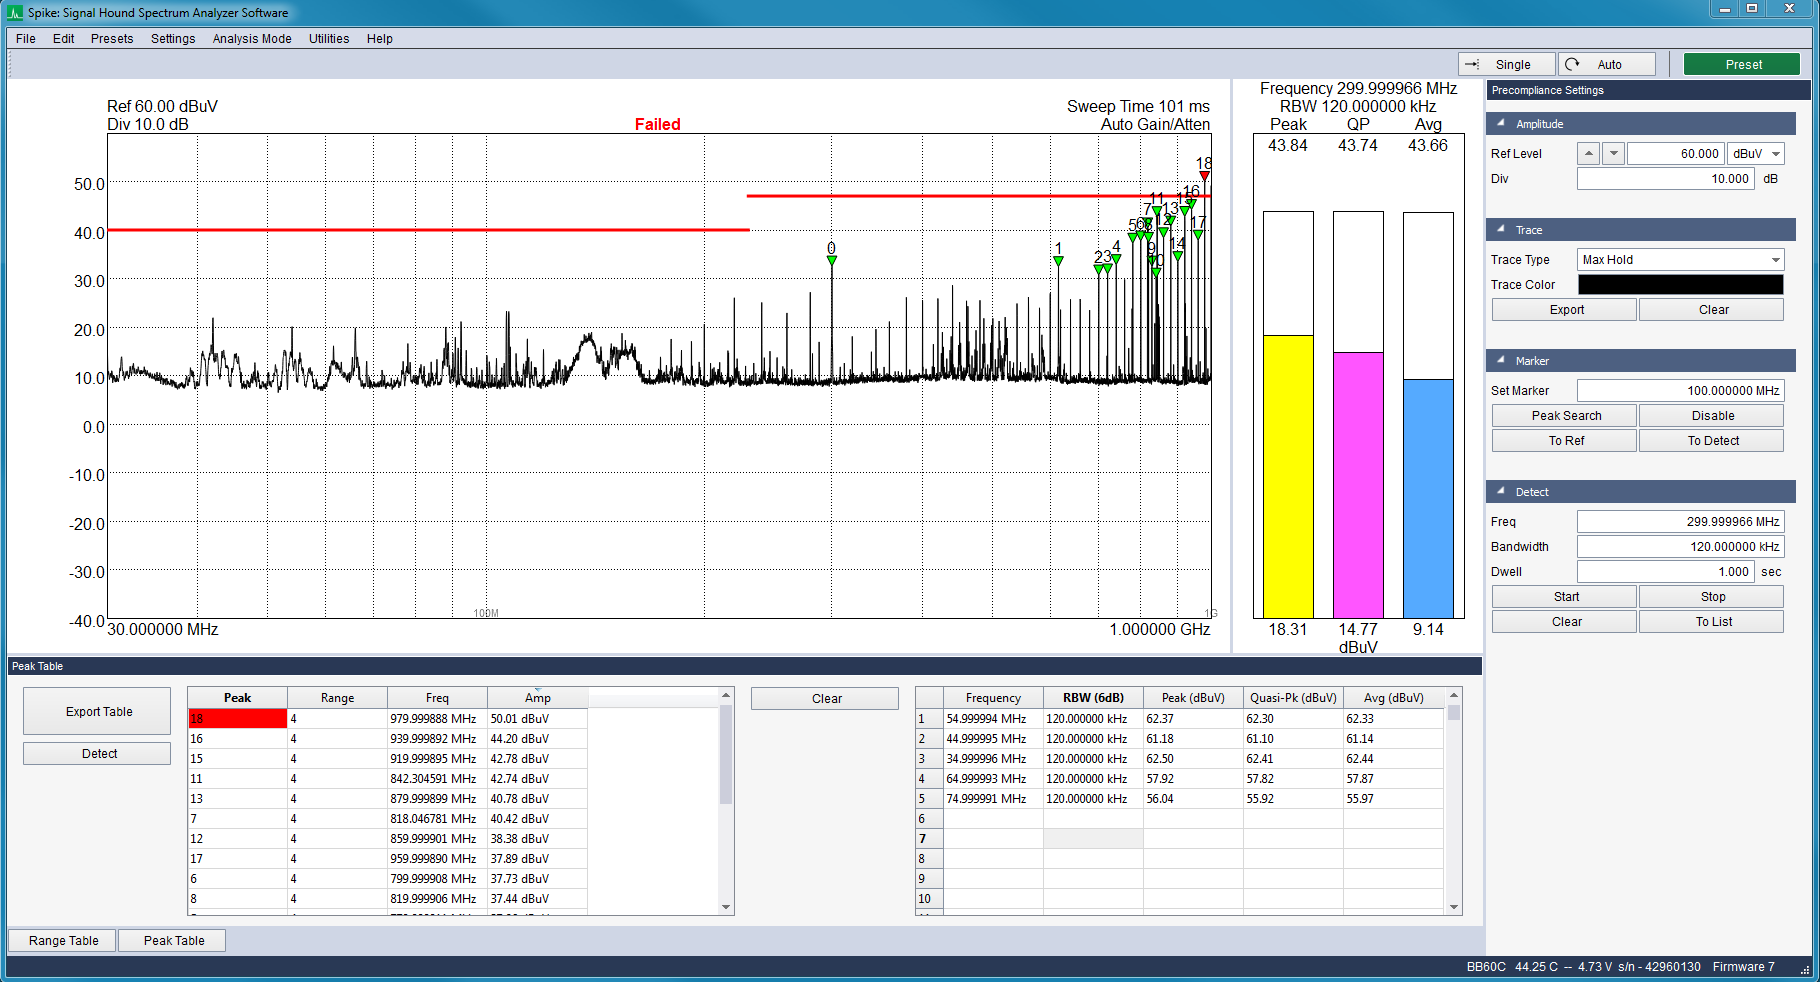 EMC precompliance analysis mode